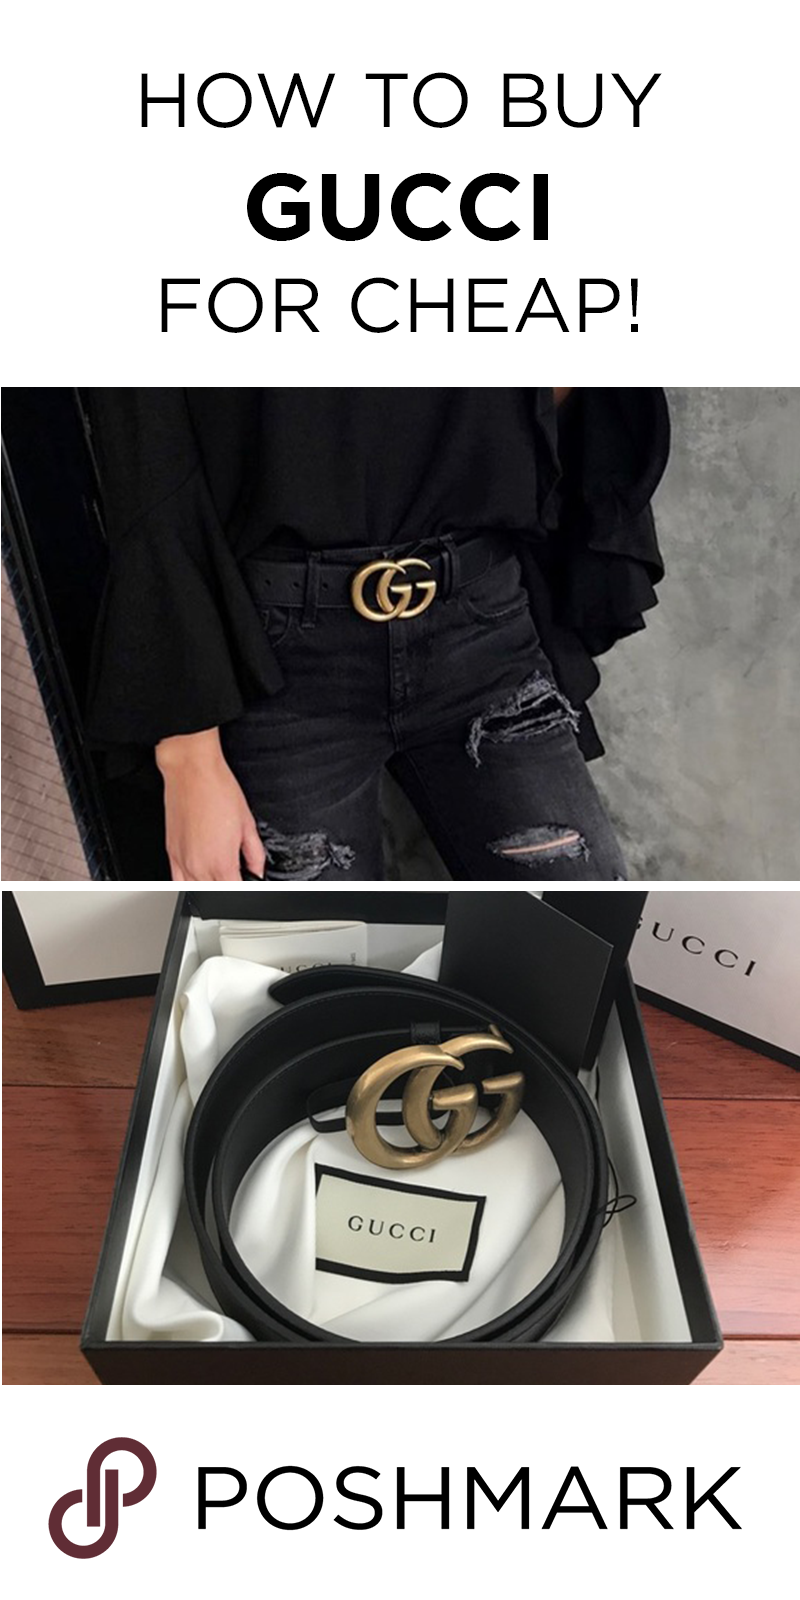 b10f1ab4a Get pre-owned Gucci for up to 70% off on Poshmark. Download the free app to  shop!